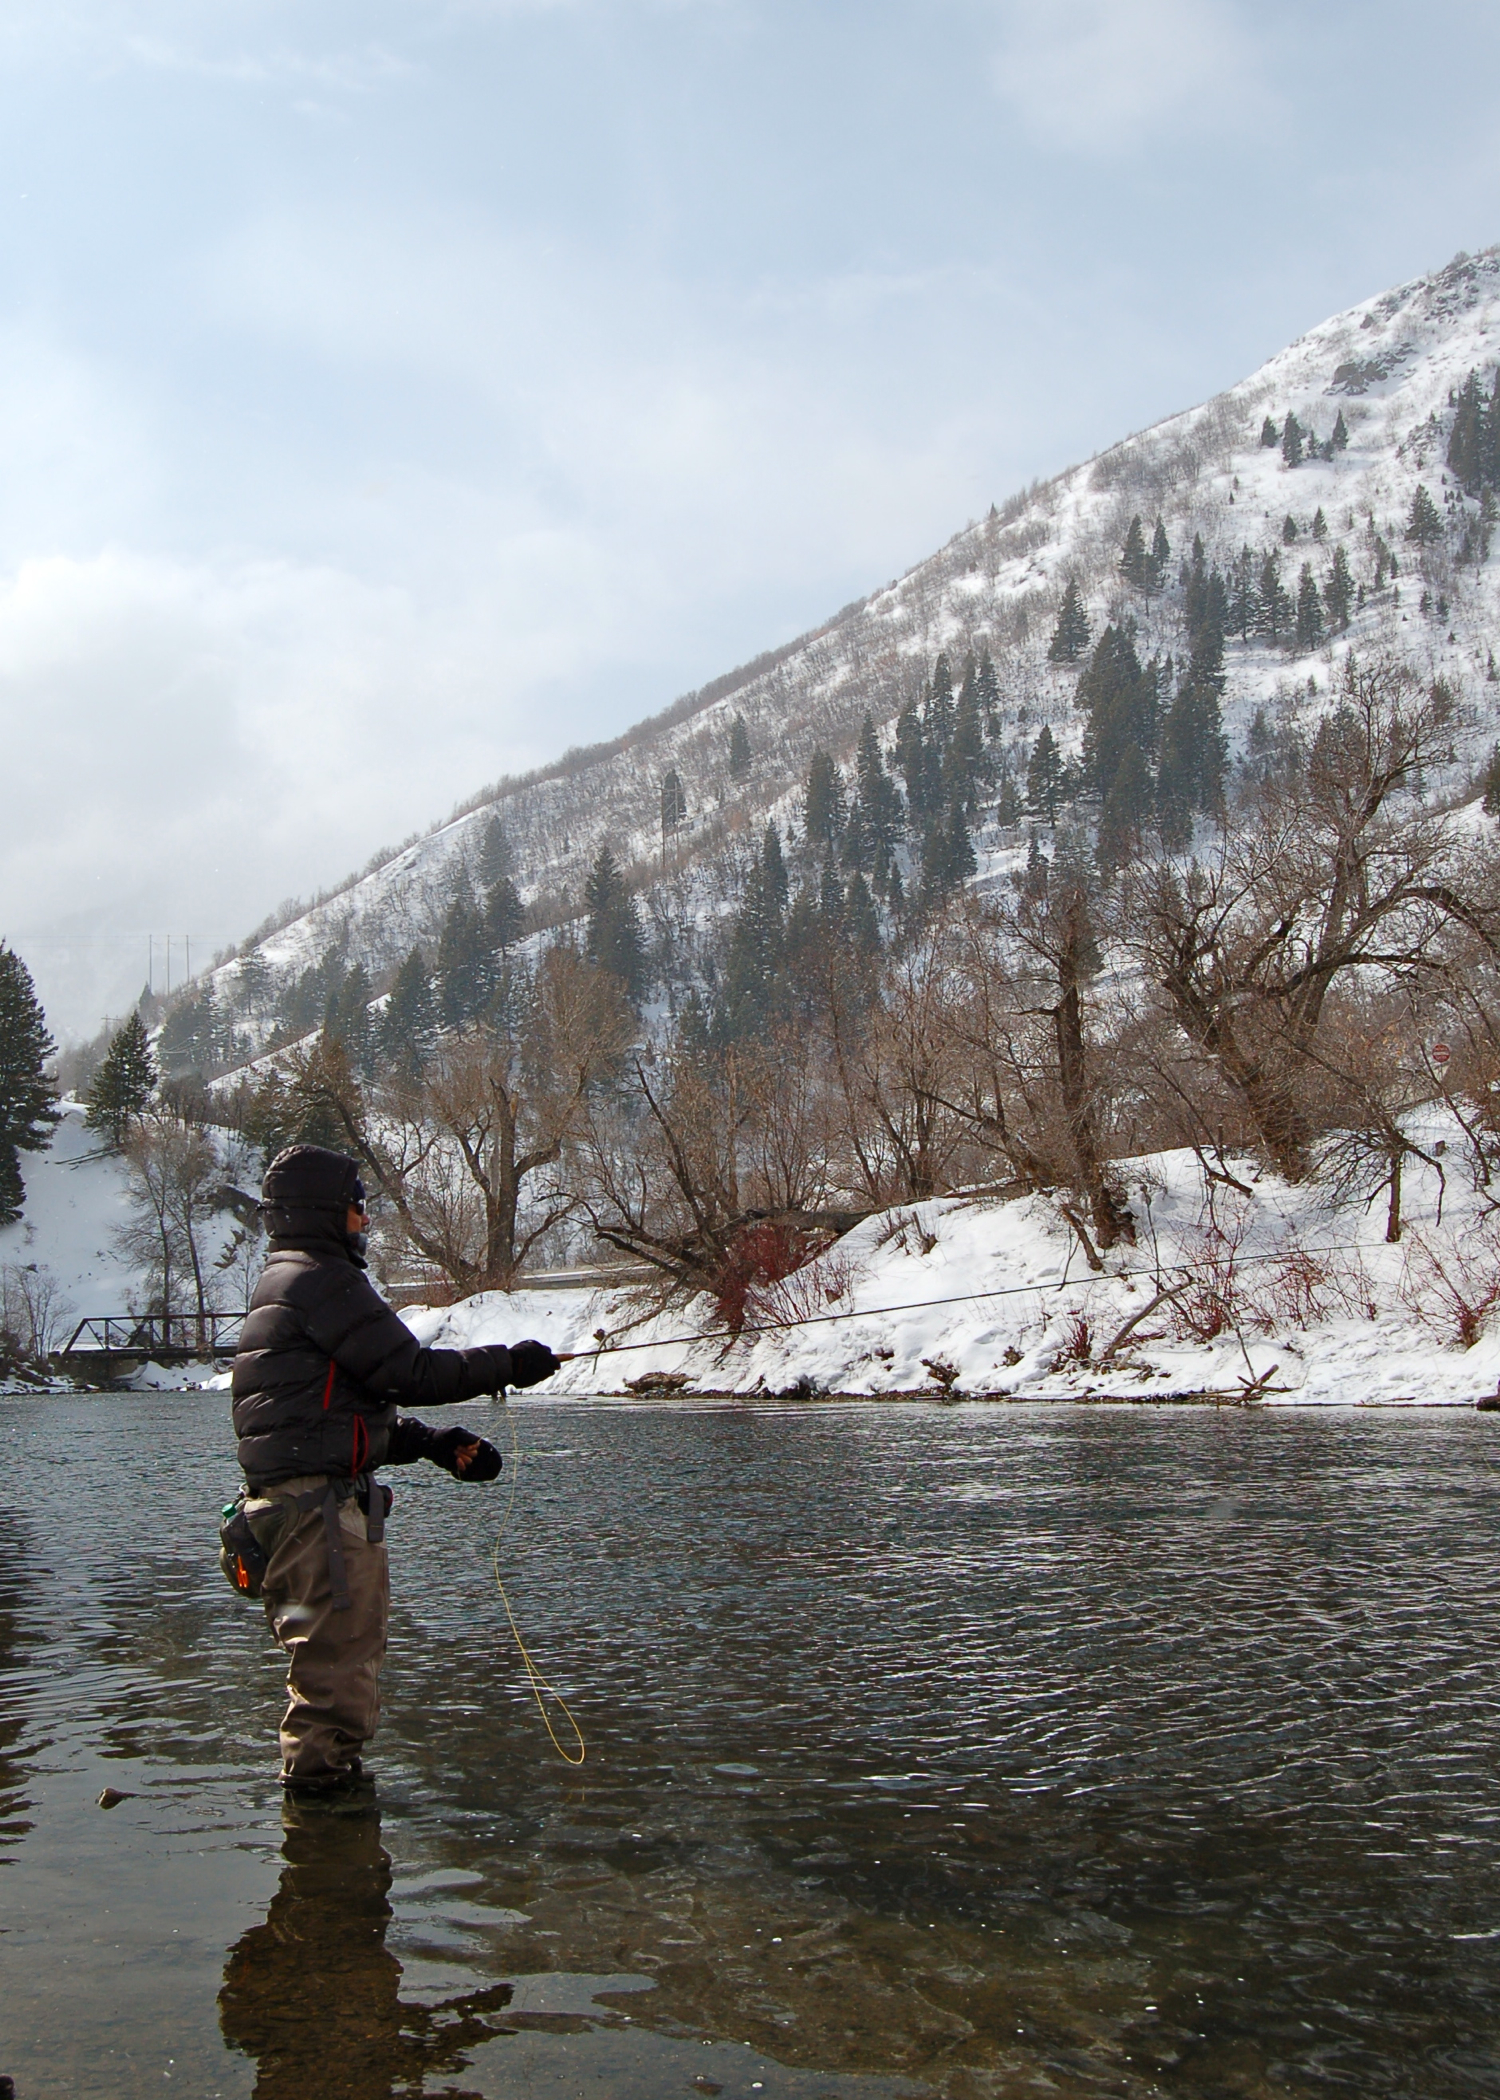 Ernie on the lower Provo River